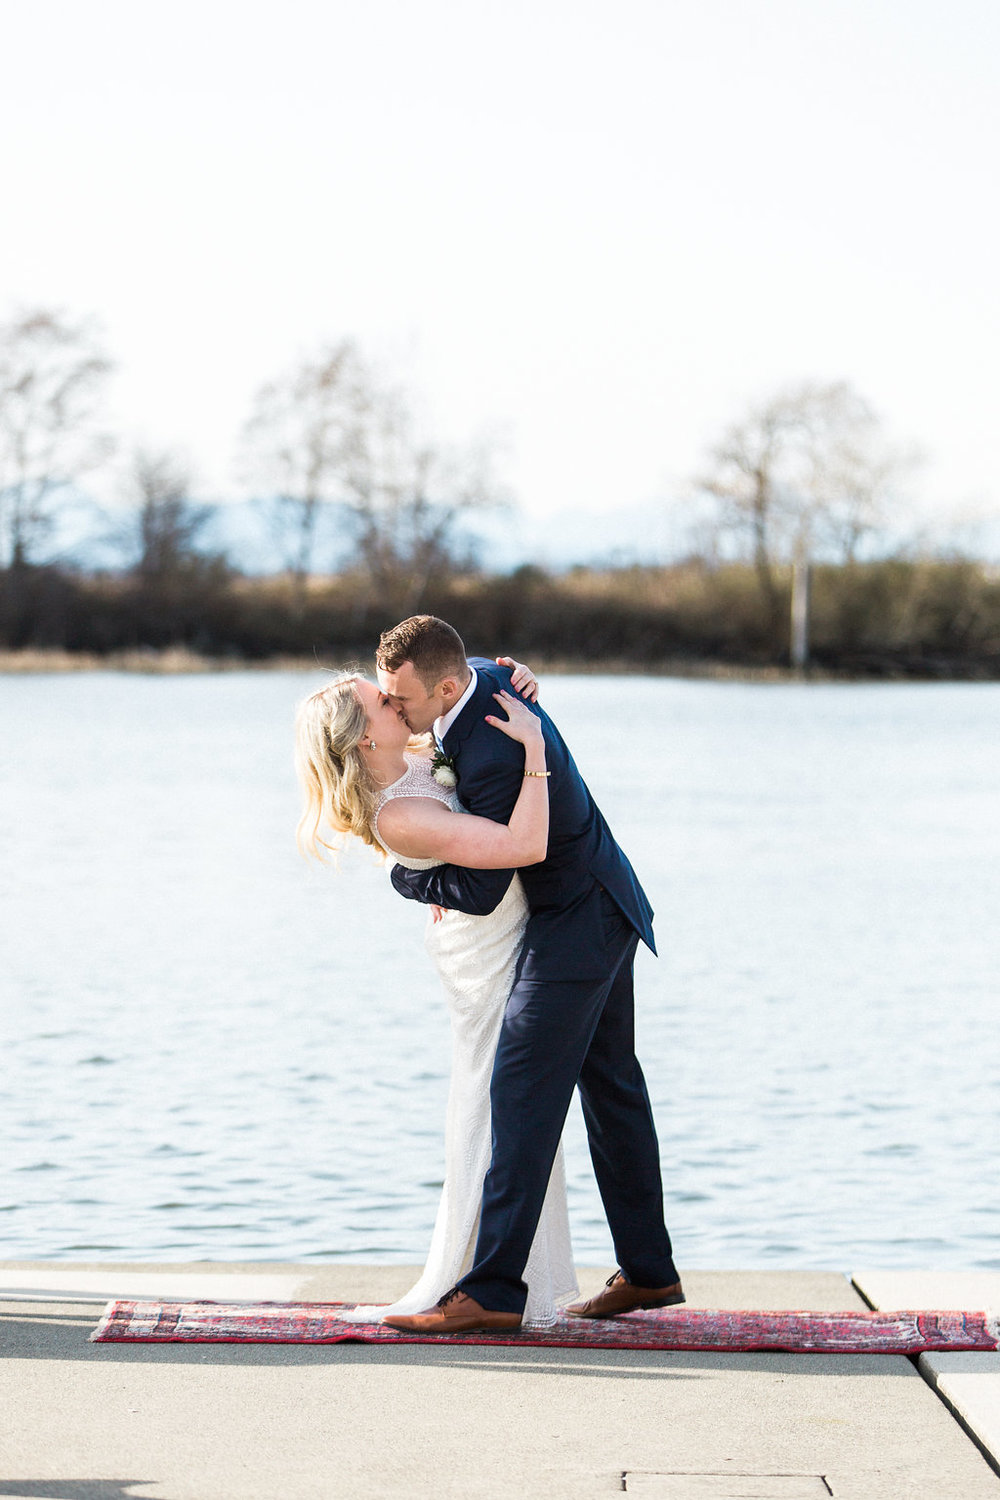 Vancouver Wedding Planner UBC Boathouse Wedding - L&M10.jpg